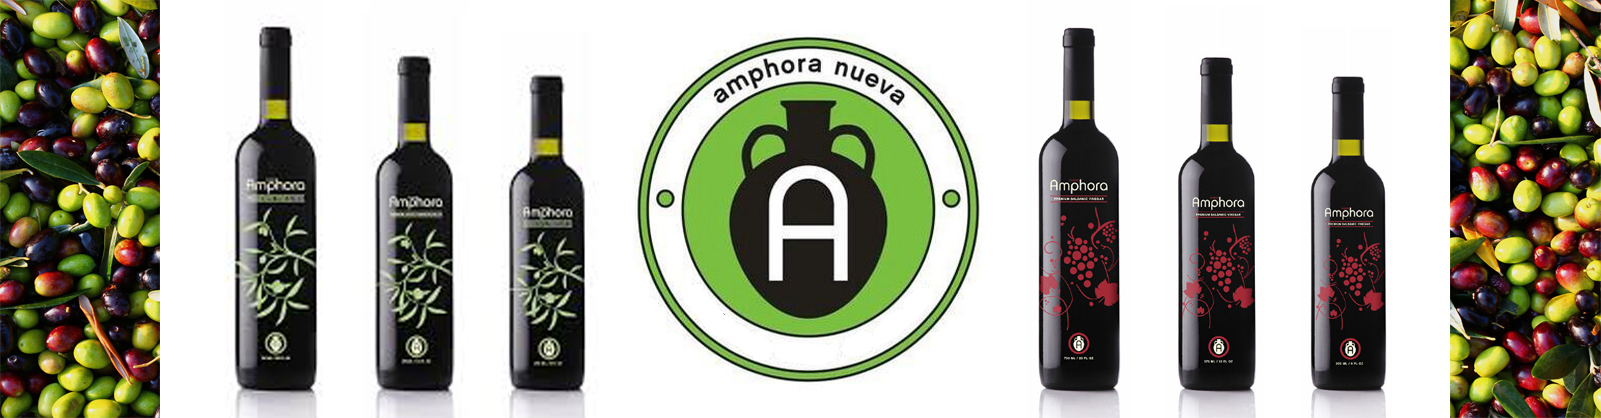 Amphora-Banner-Website.jpg